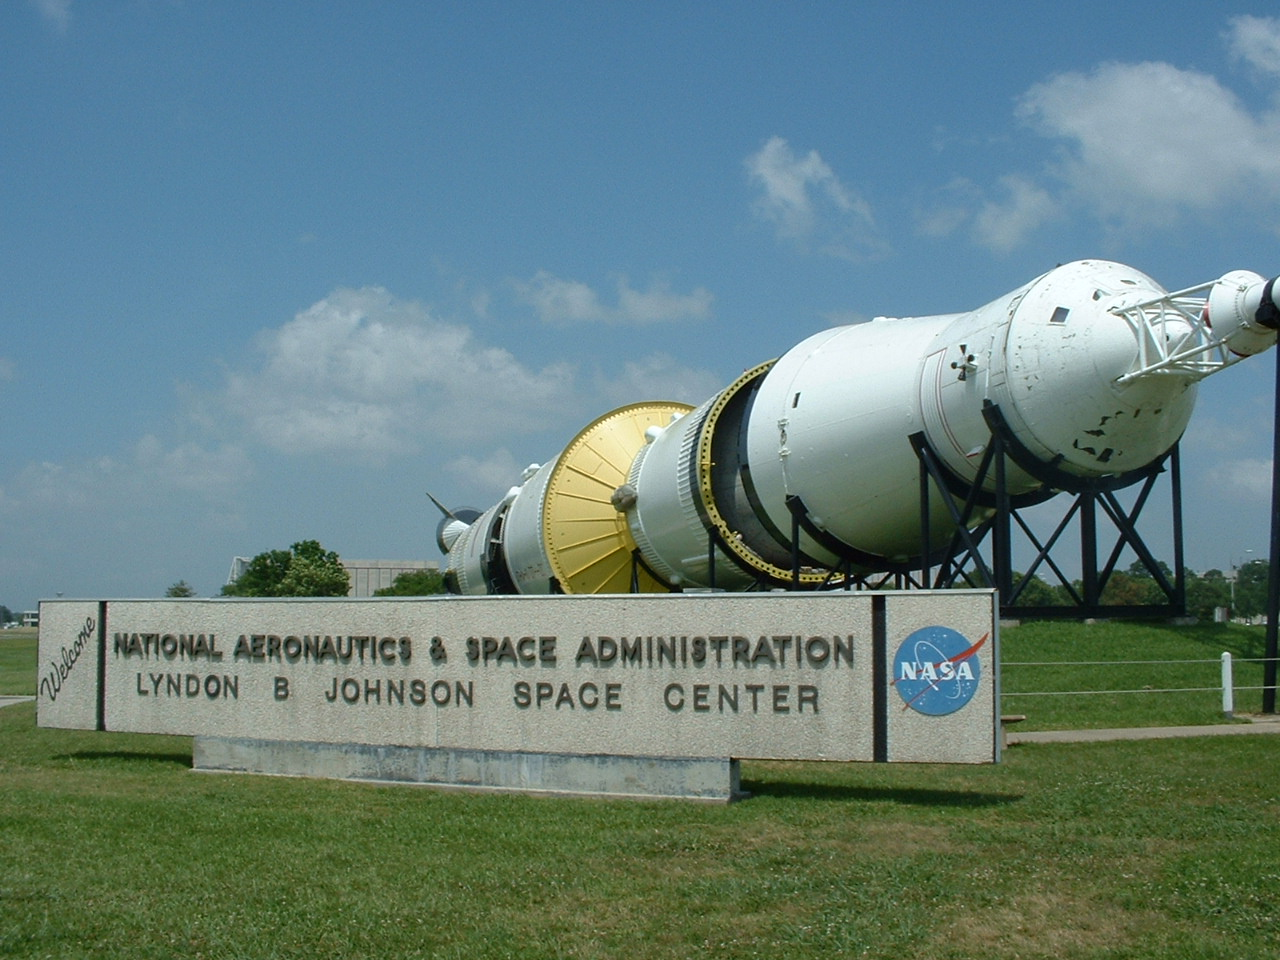 Lyndon B. Johnson Space Center texas